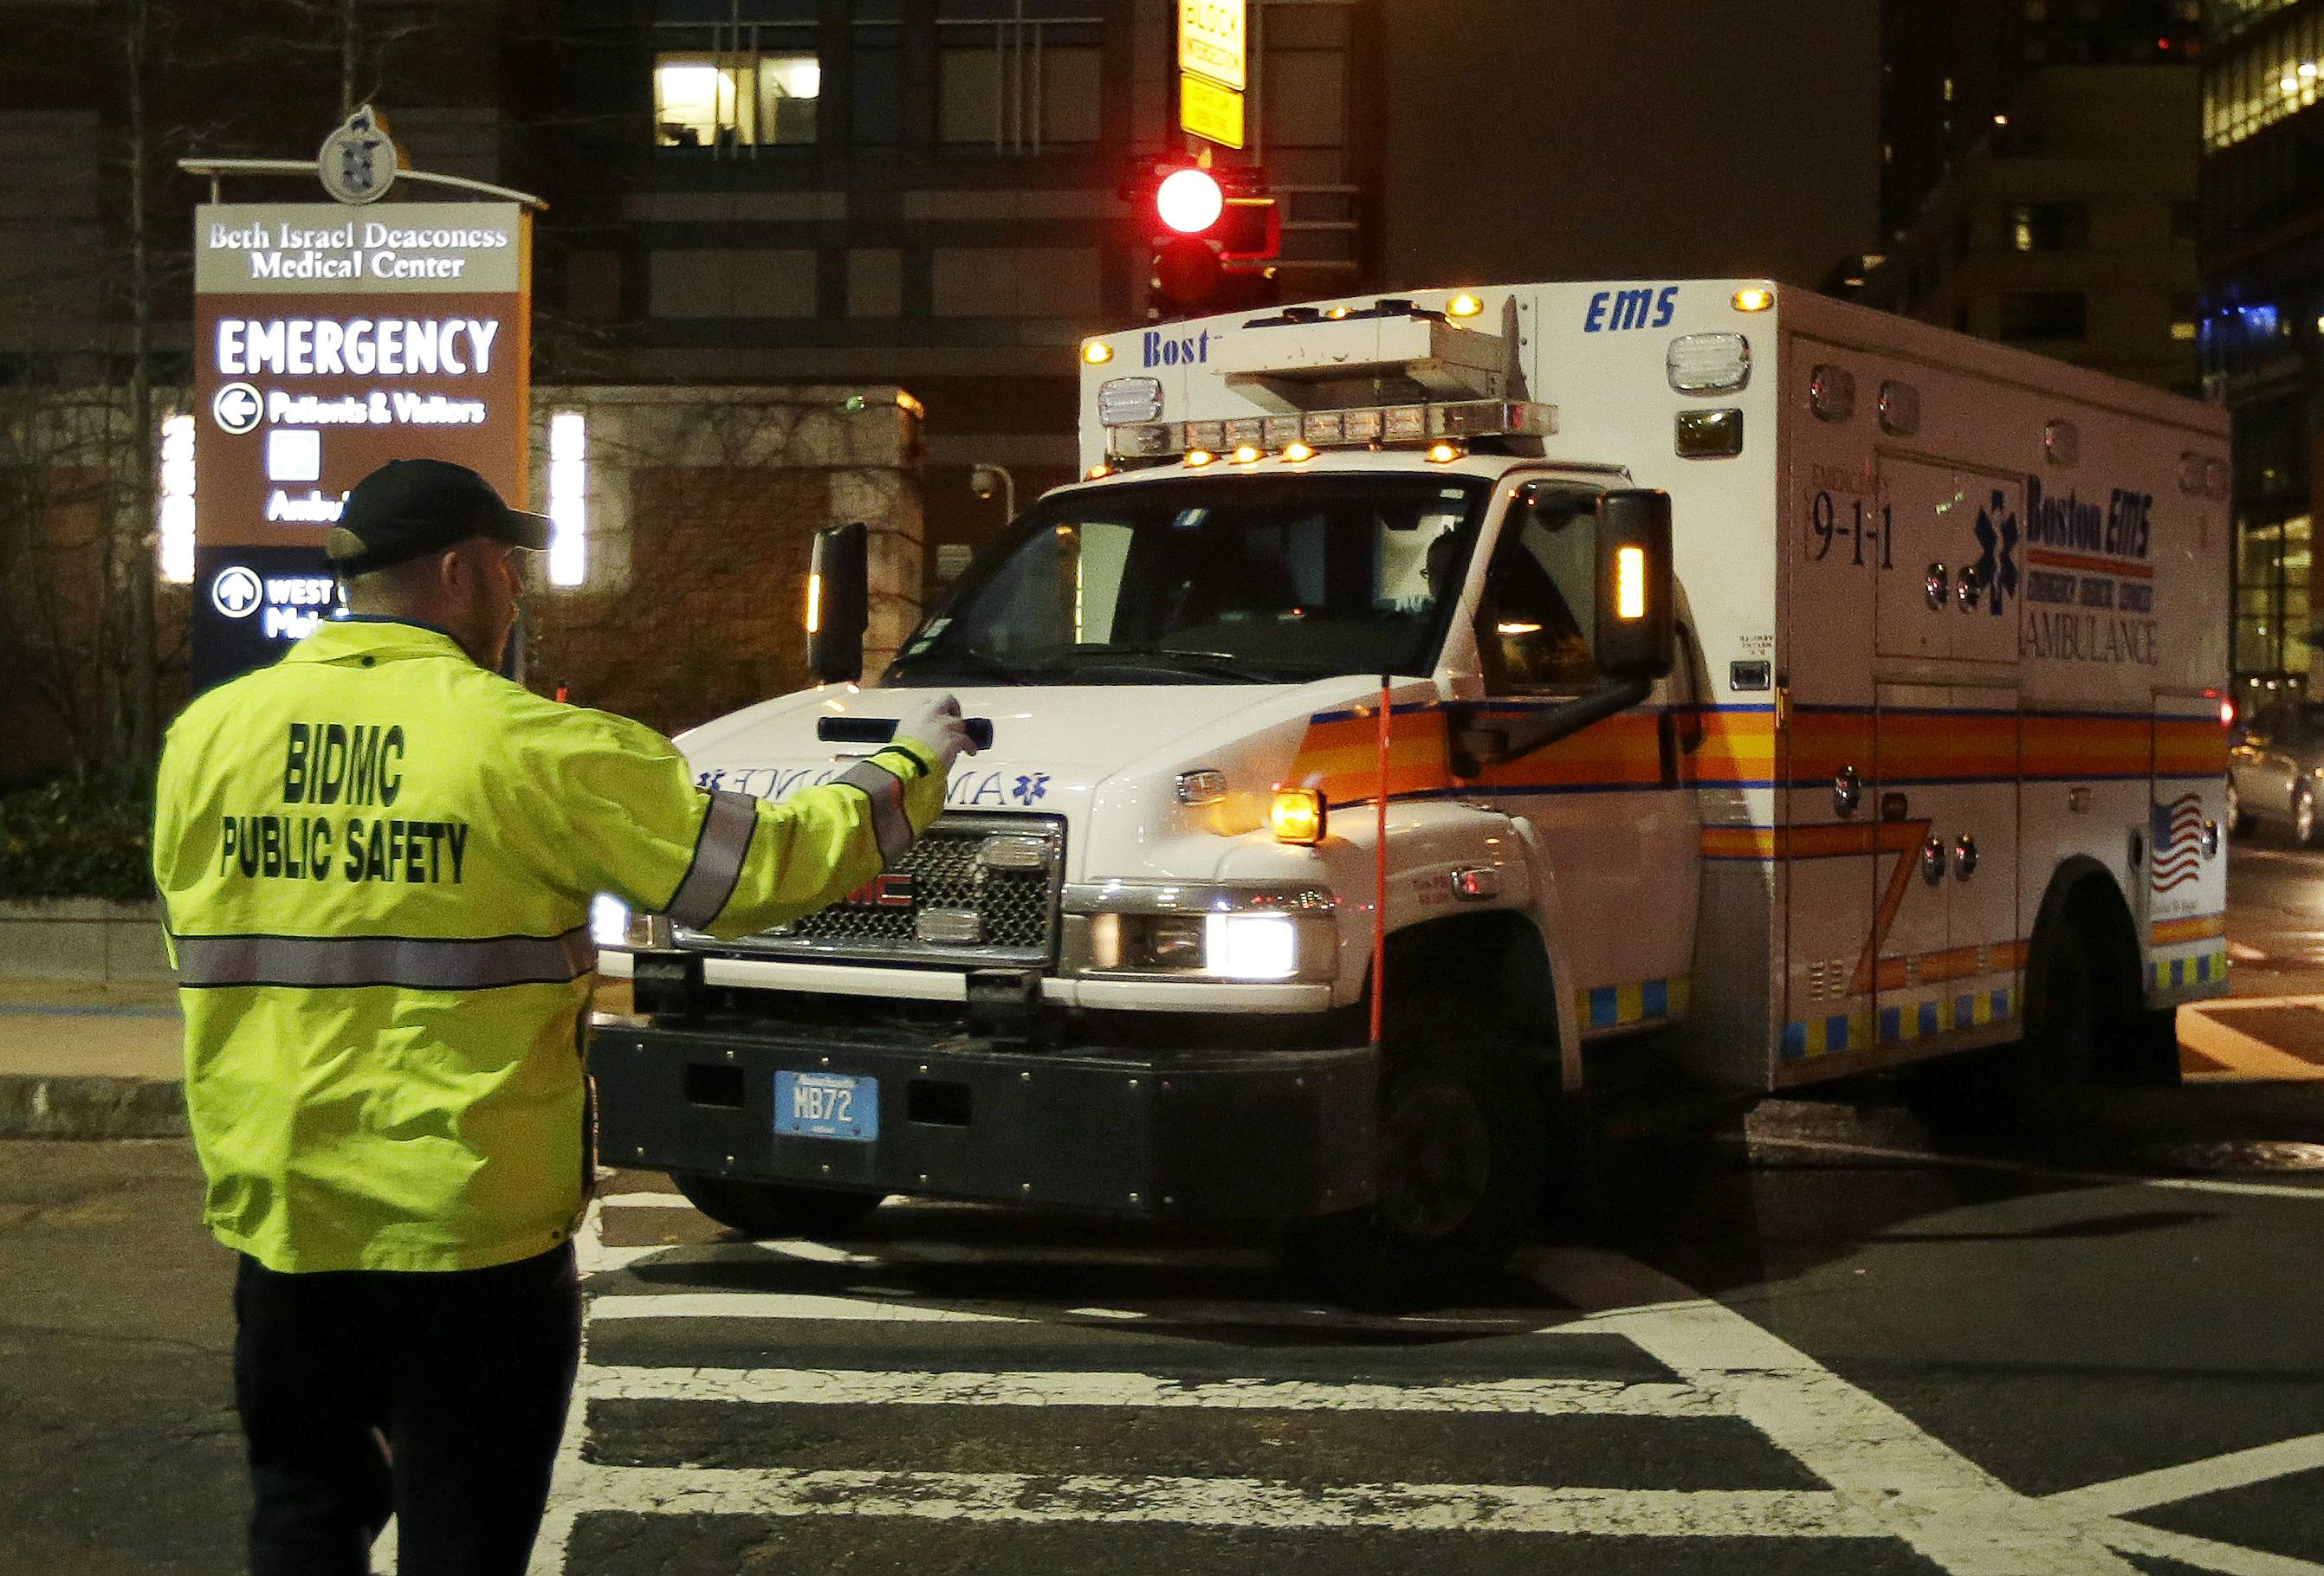 An ambulance carrying Dzhokhar Tsarnaev, a19-year-old Massachusetts college student wanted in the Boston Marathon bombings, turns into Beth Israel Deaconess Medical Center Friday, April 19, 2013, after he was captured in an all day manhunt. Tsarnaev is hospitalized in serious condition with unspecified injuries, police said.